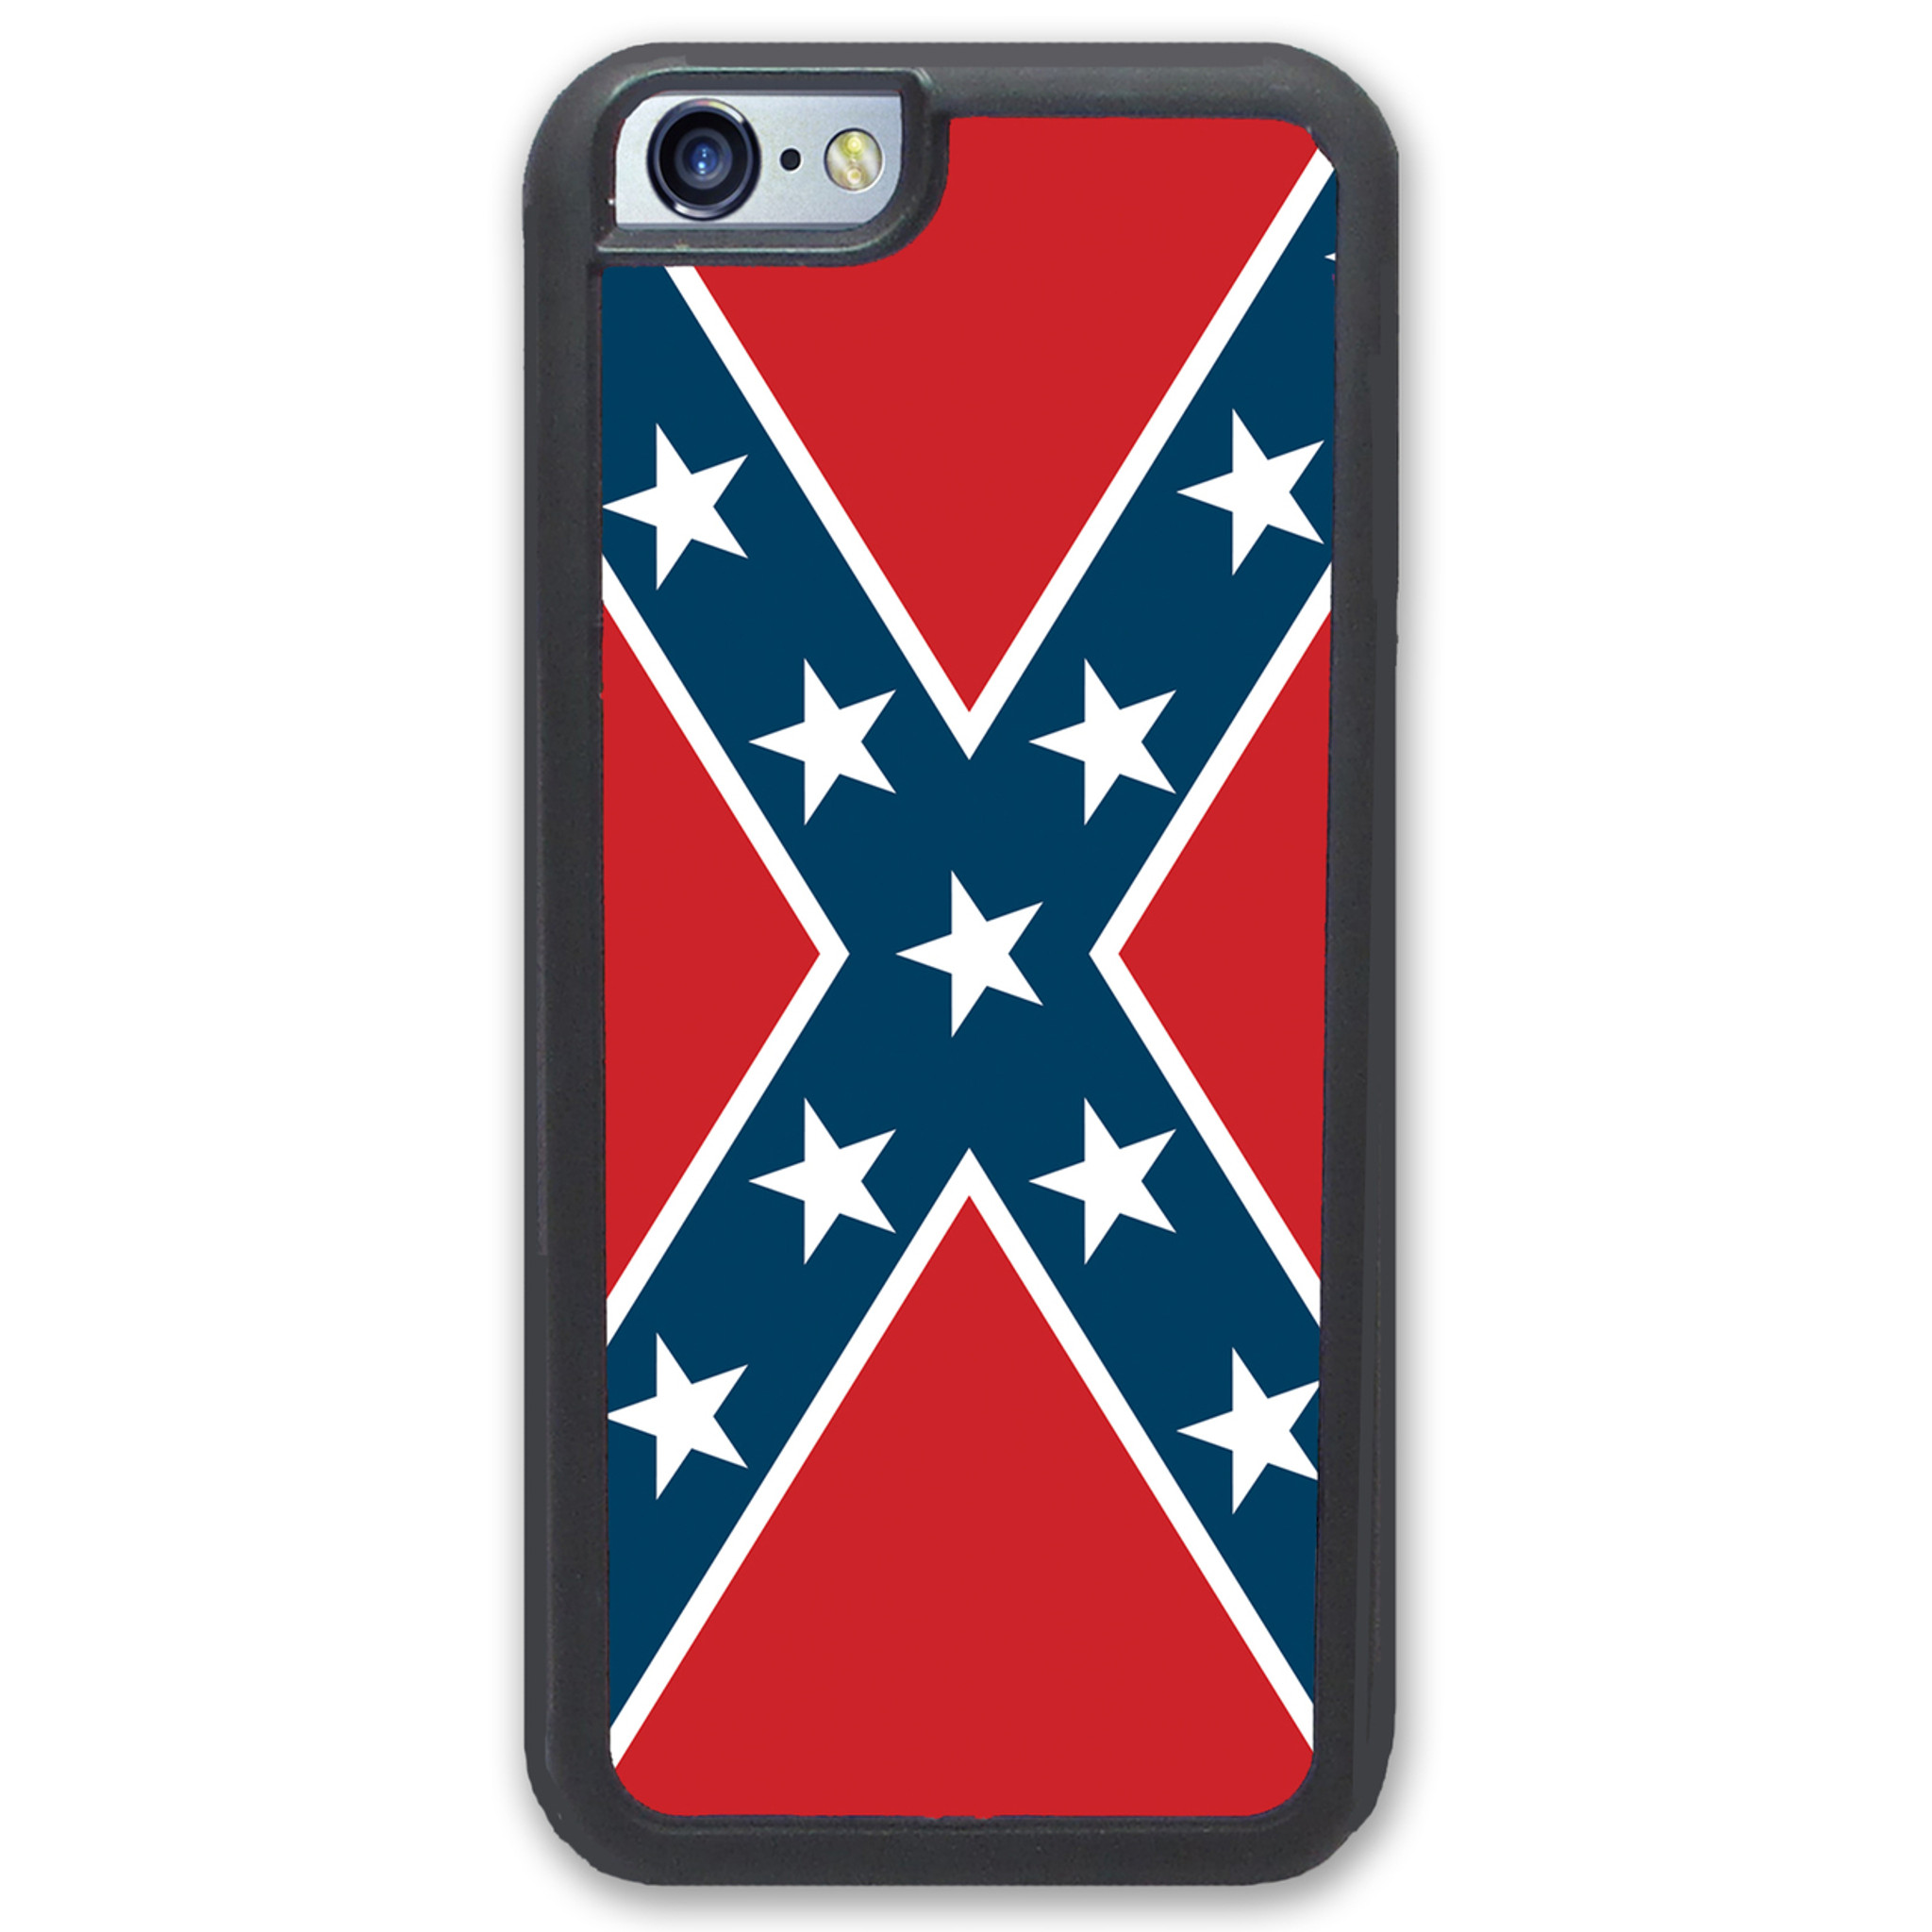 separation shoes bc3ee c53b1 Rebel Flag iPhone Case - Confederate Flag iPhone Case